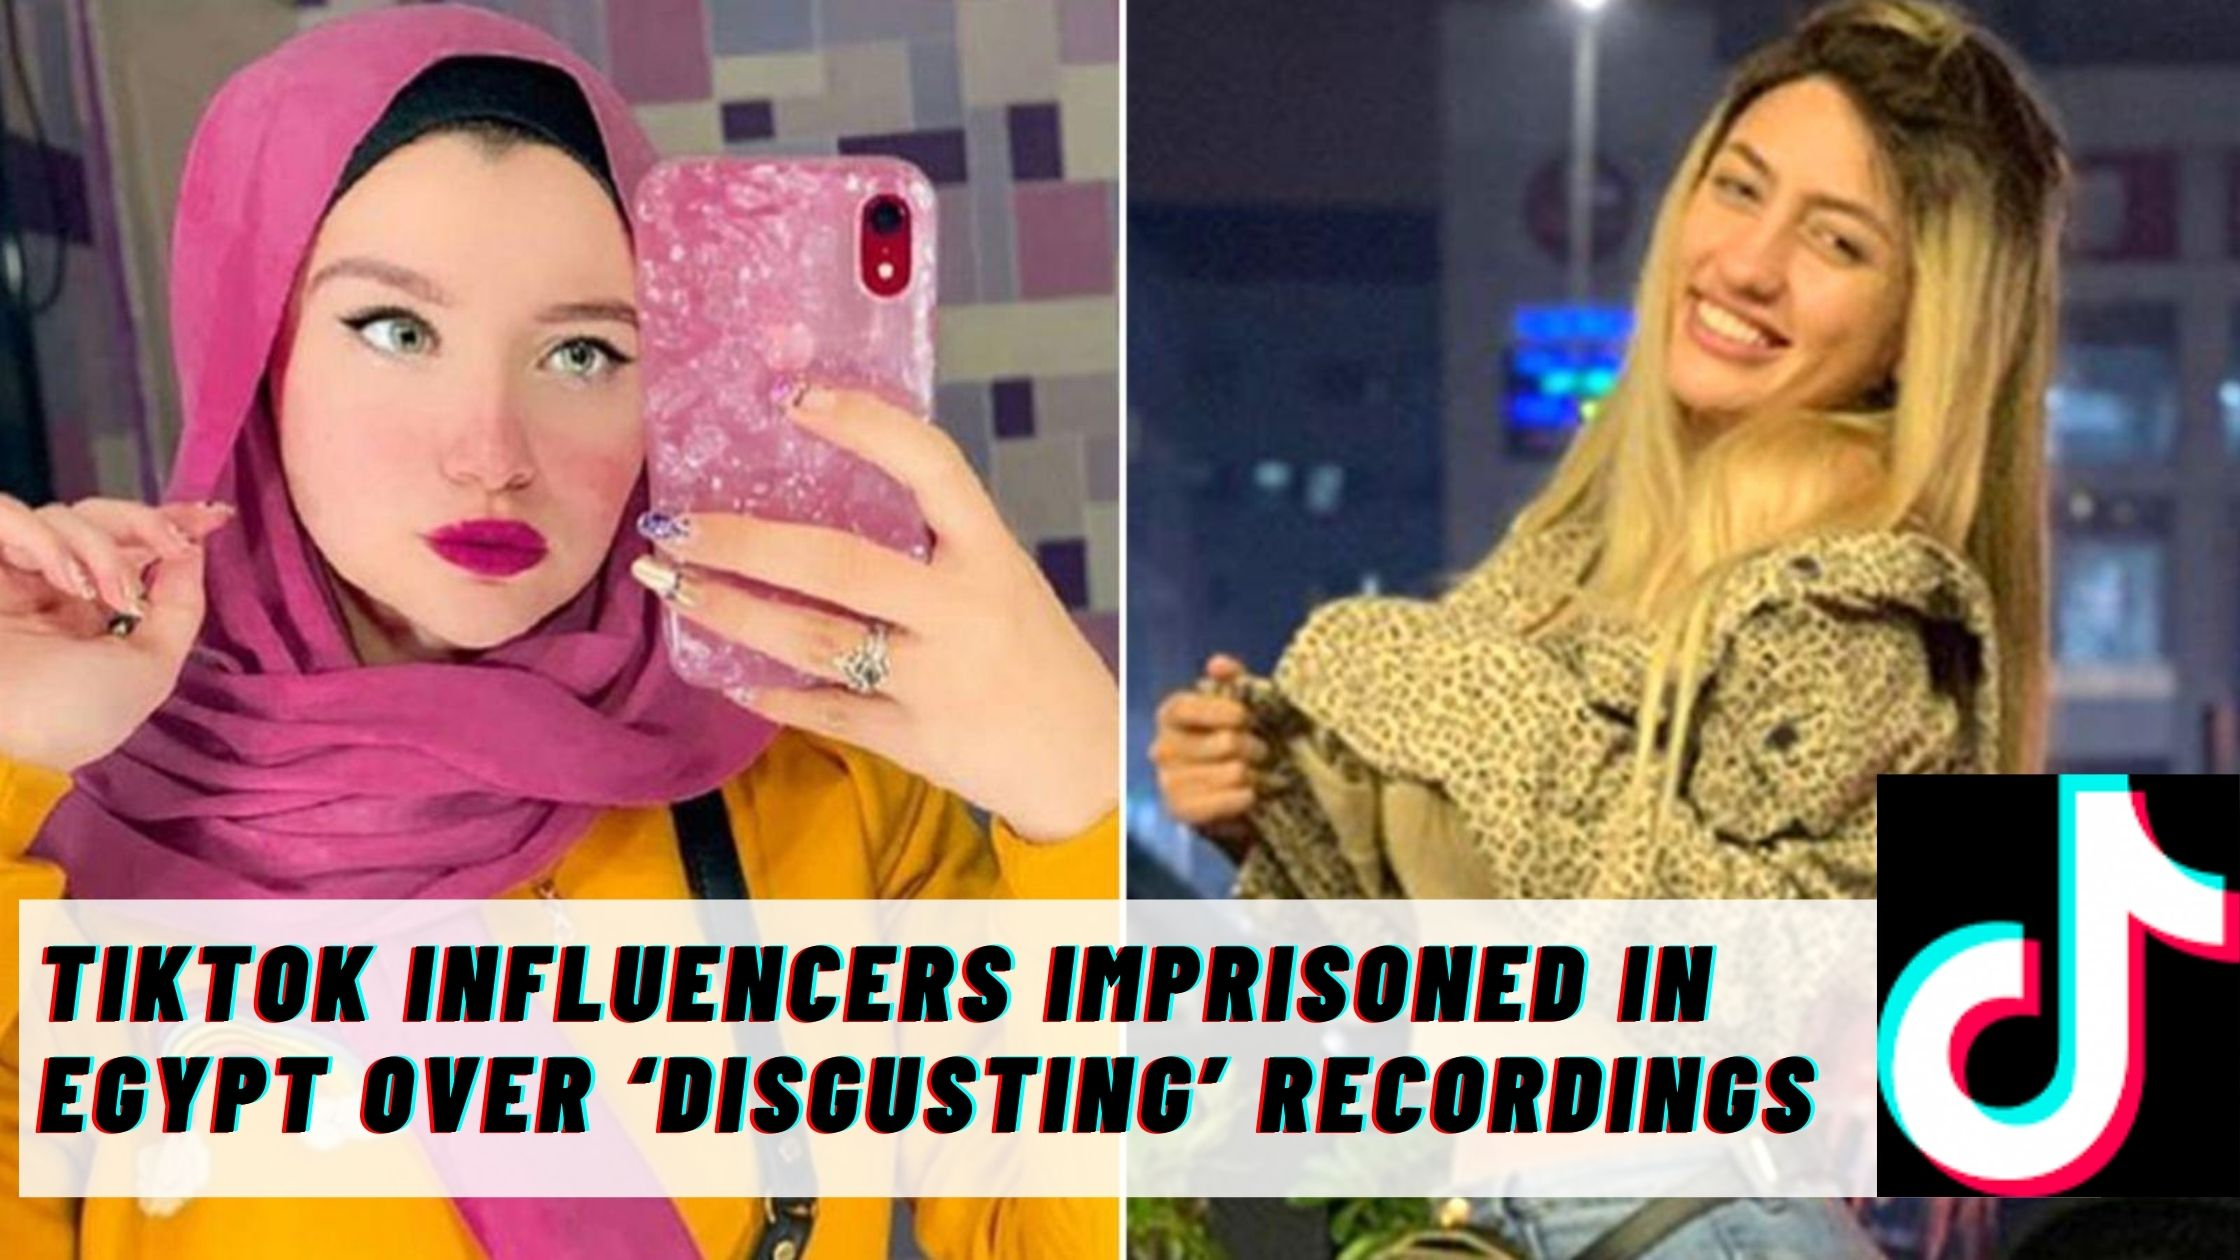 TikTok influencers imprisoned in Egypt over 'disgusting' recordings